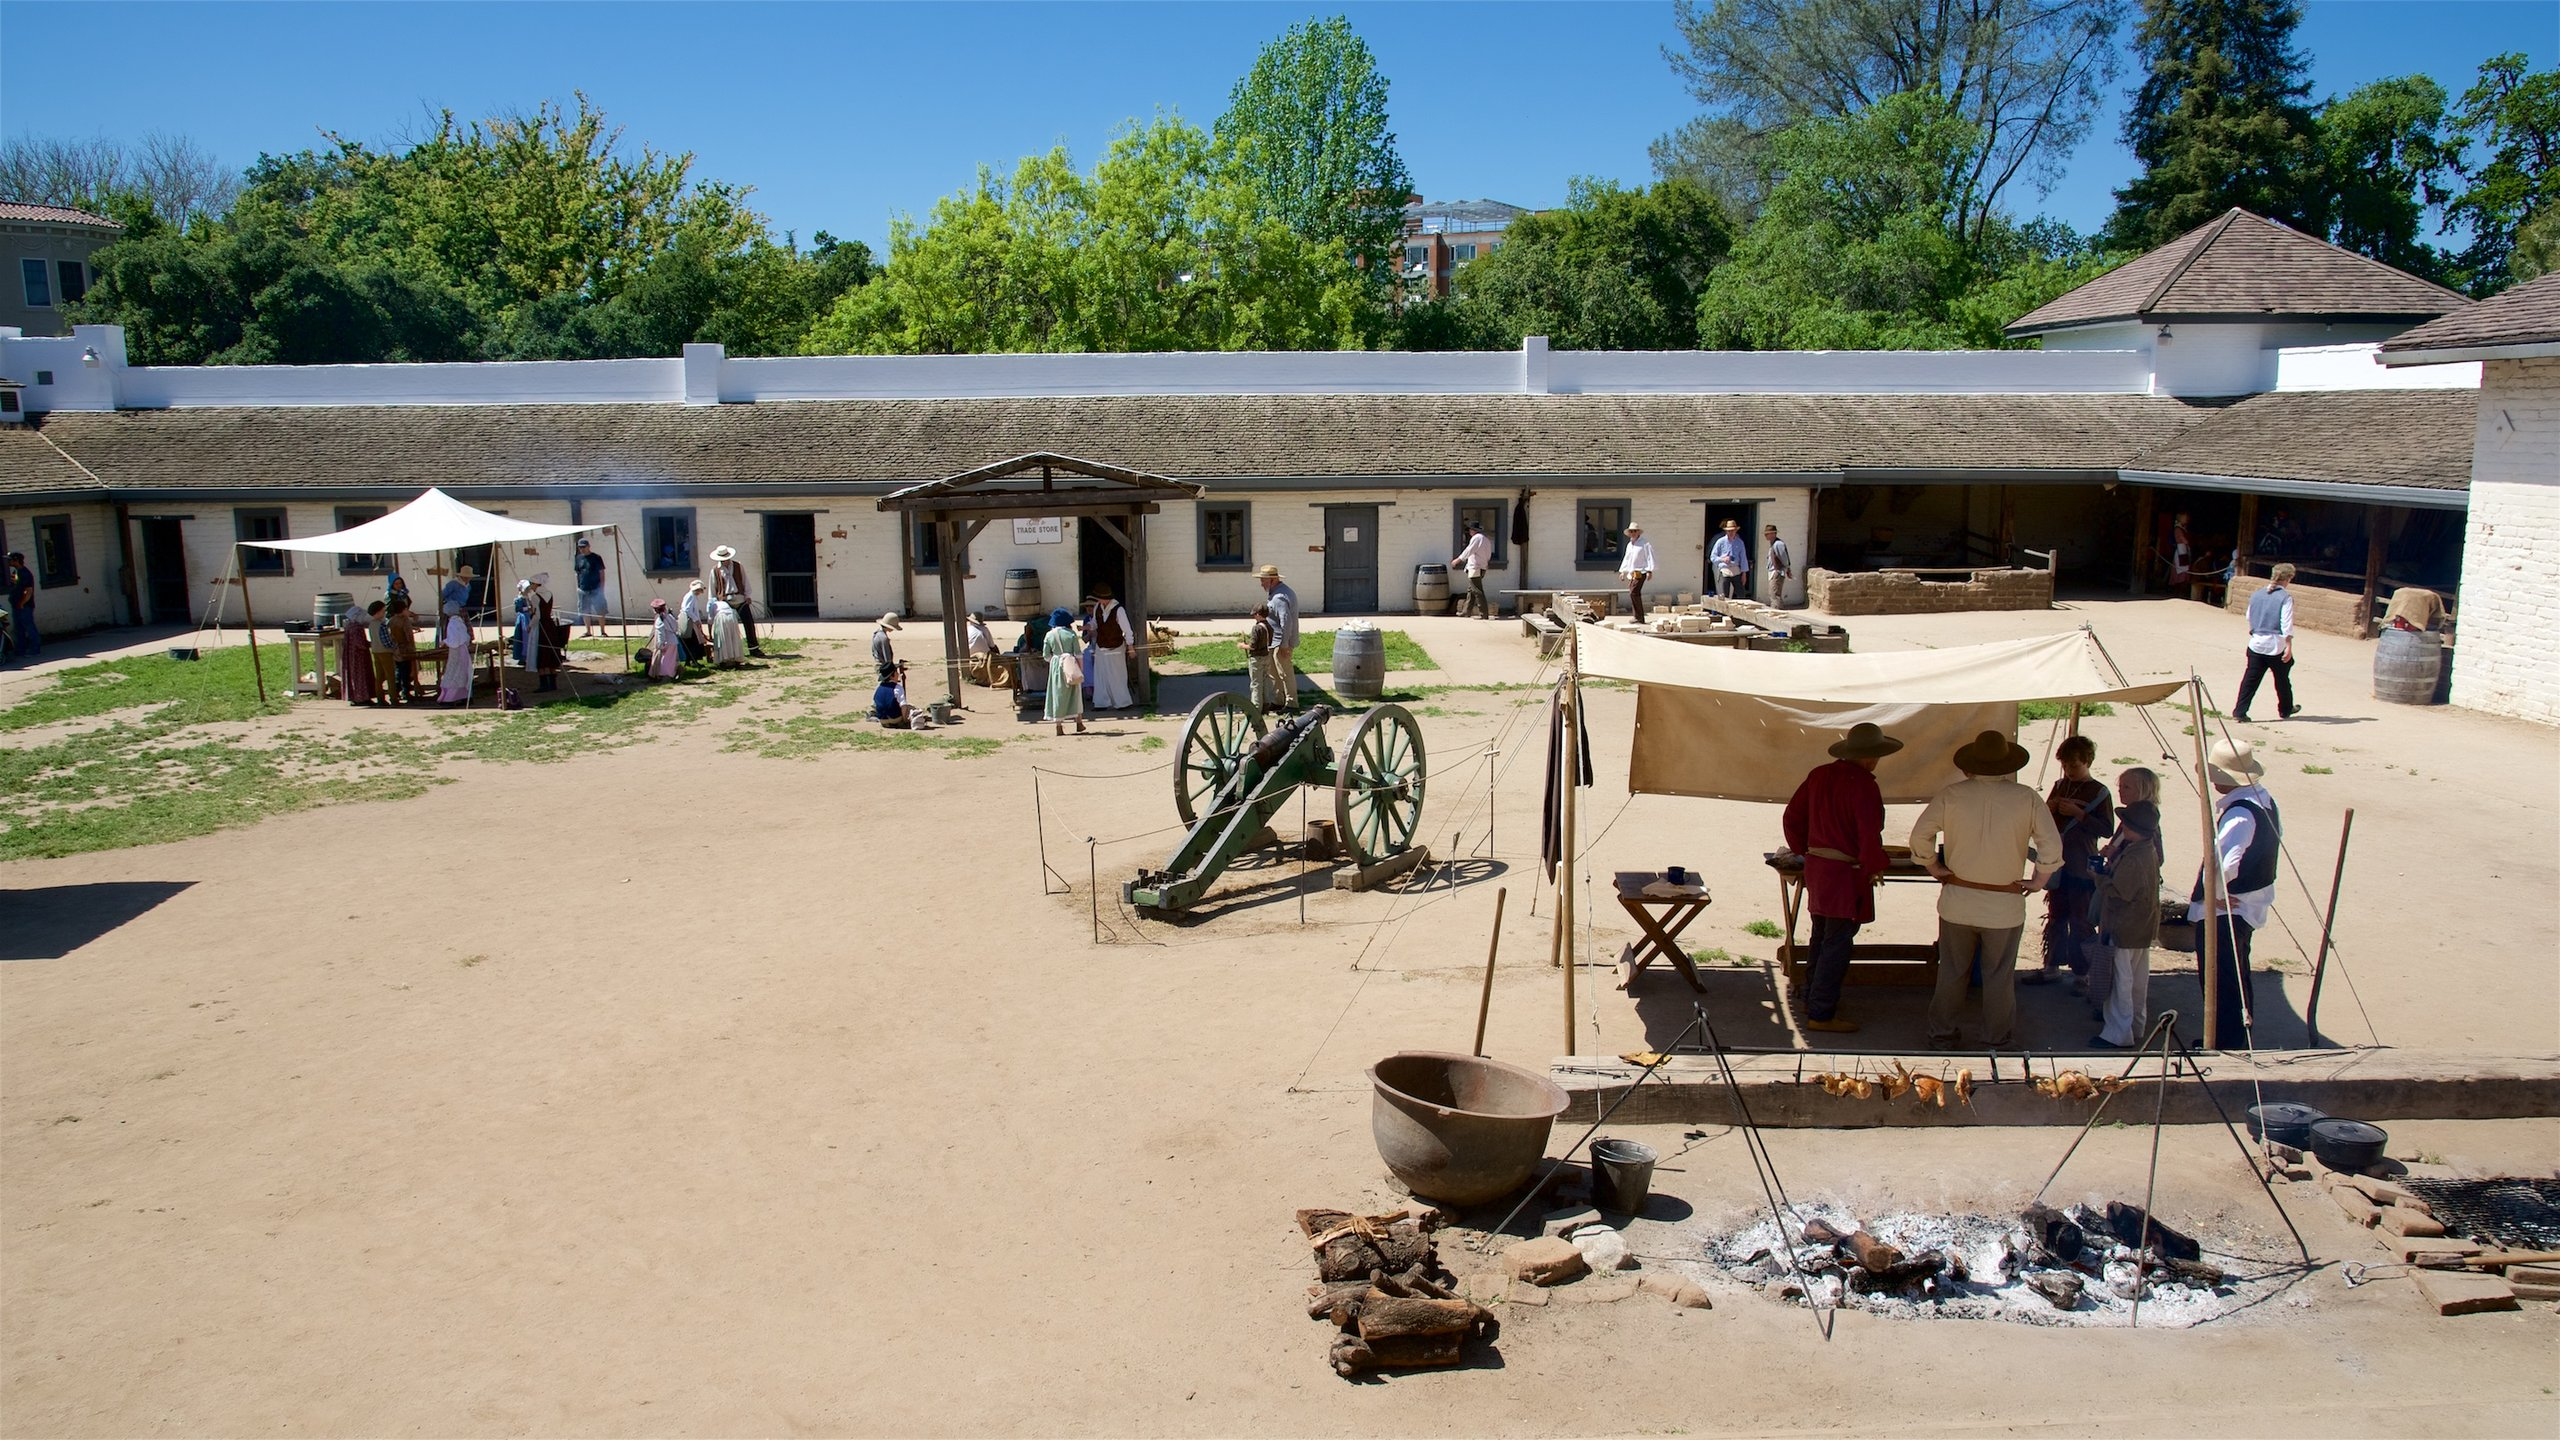 Fort Sutter State Historical Park, Sacramento, California, United States of America